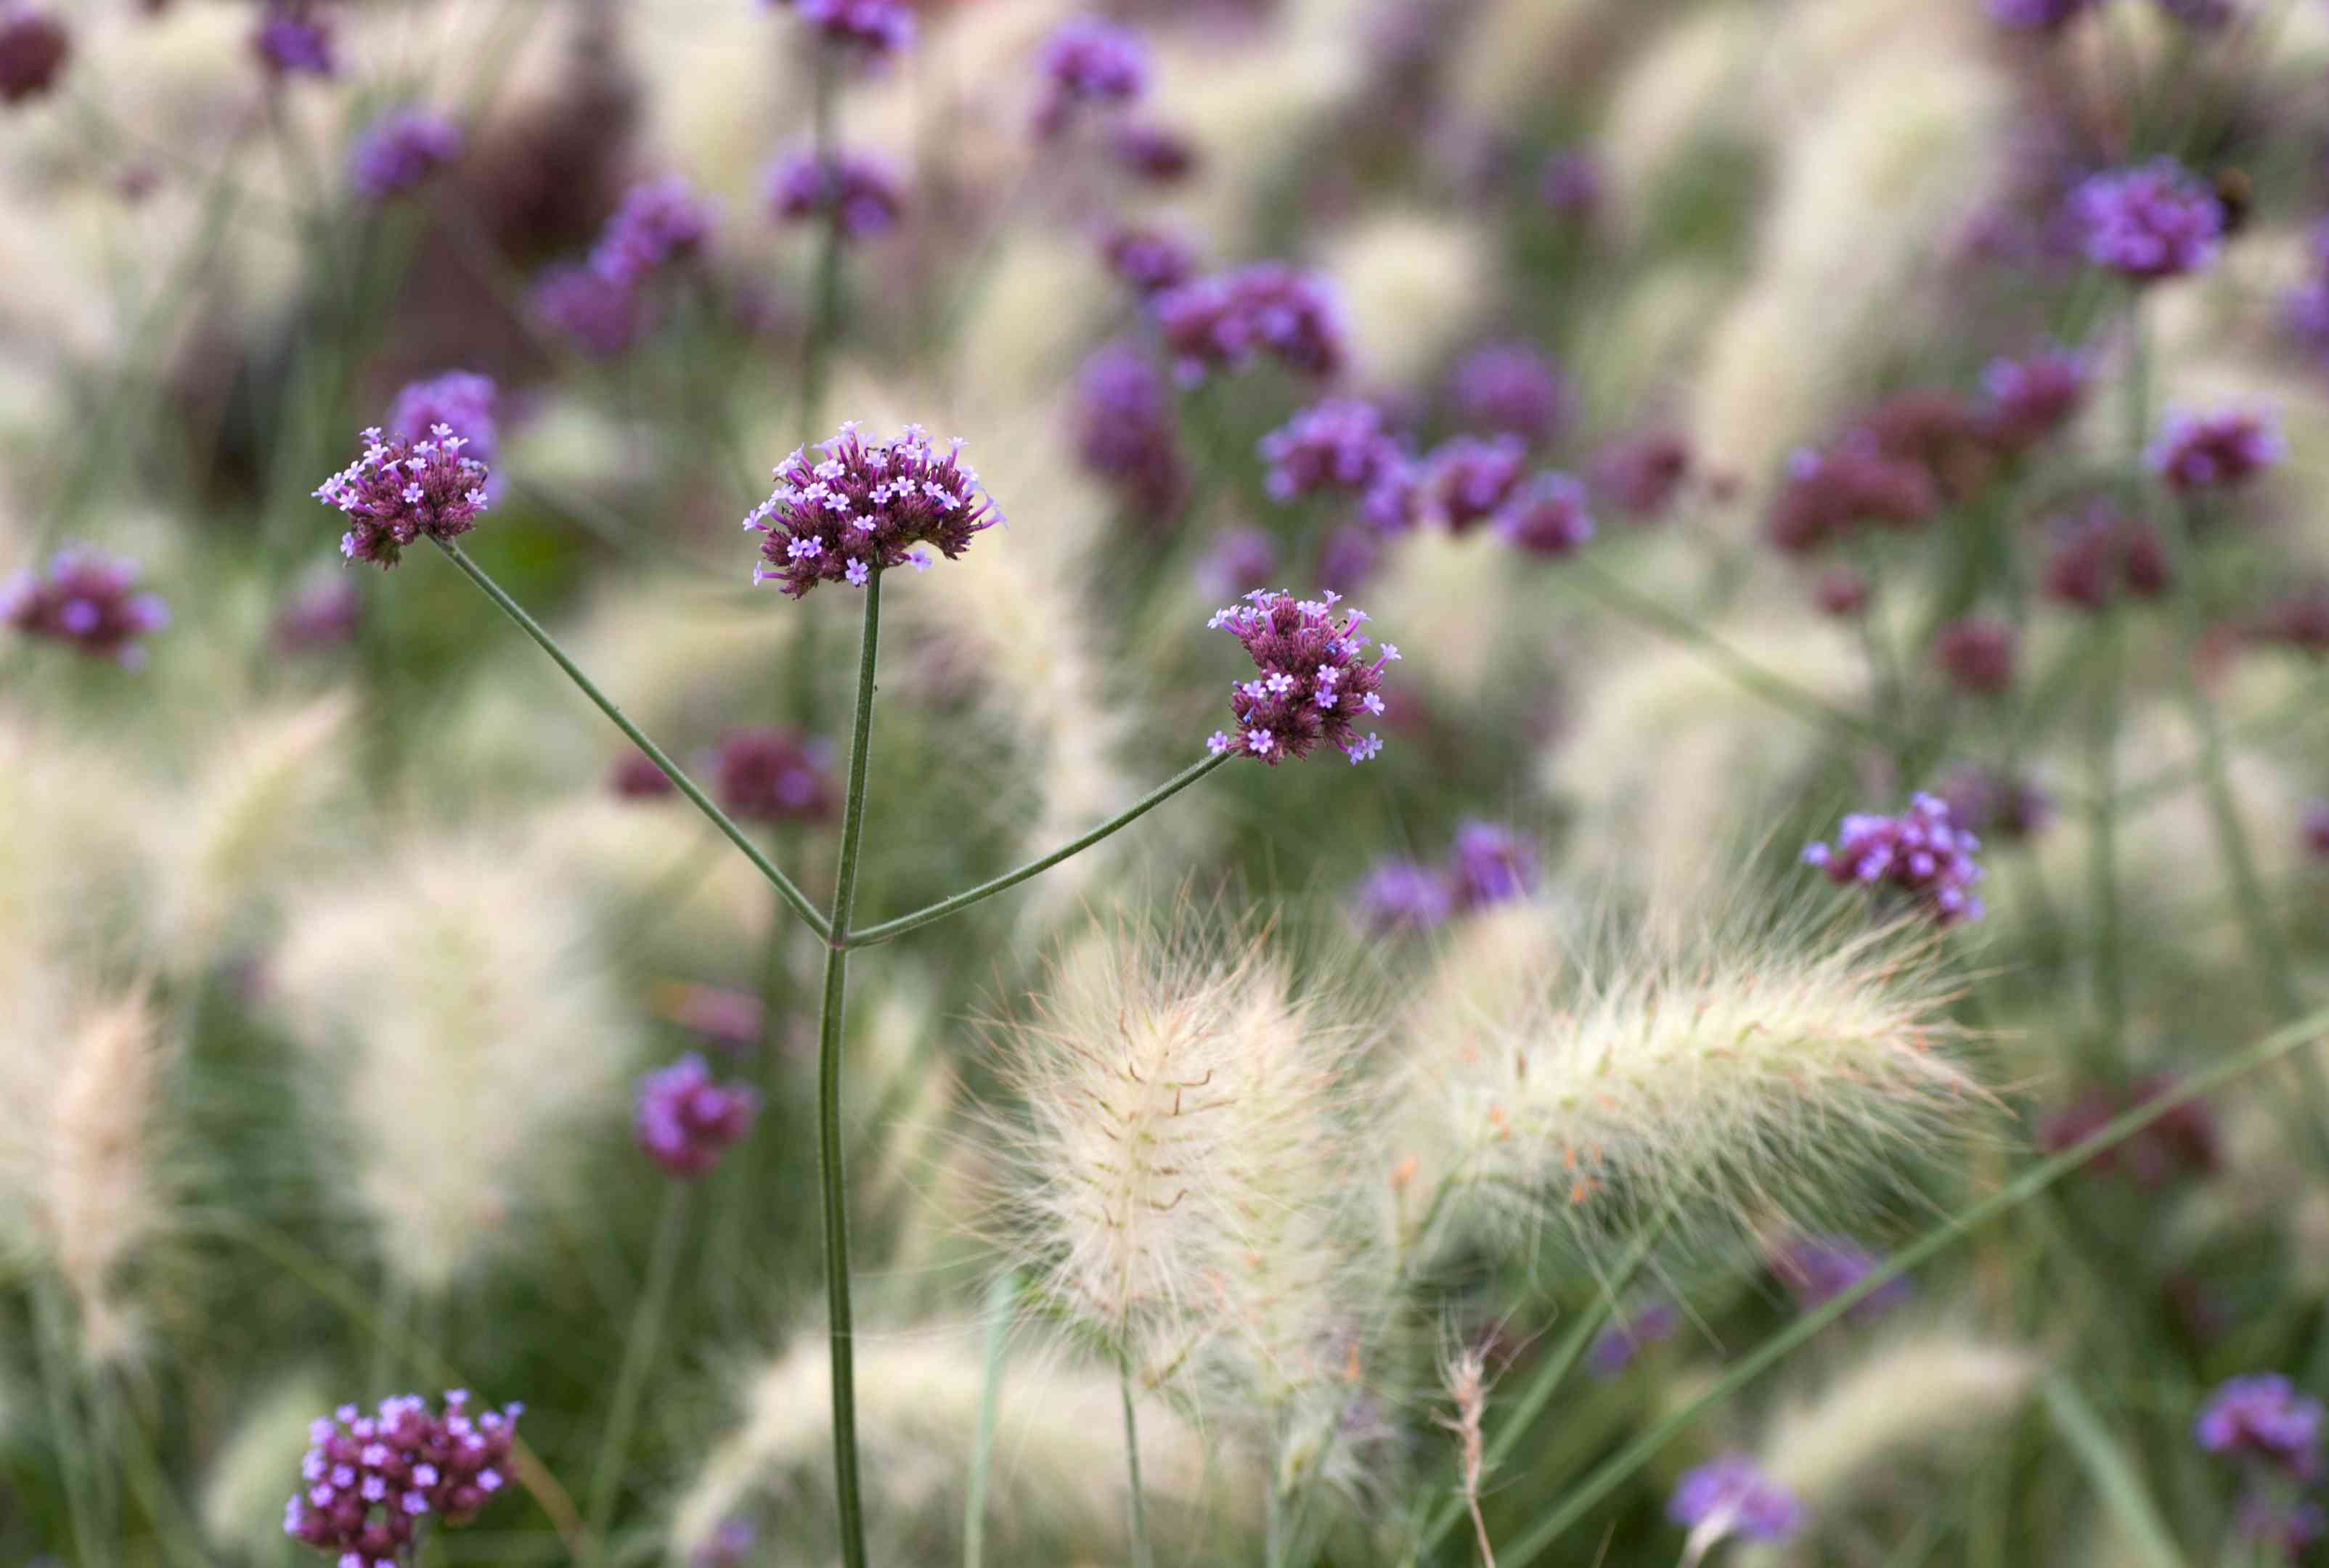 Tall verbana plant with long branching stalk and small purple flower clusters at ends